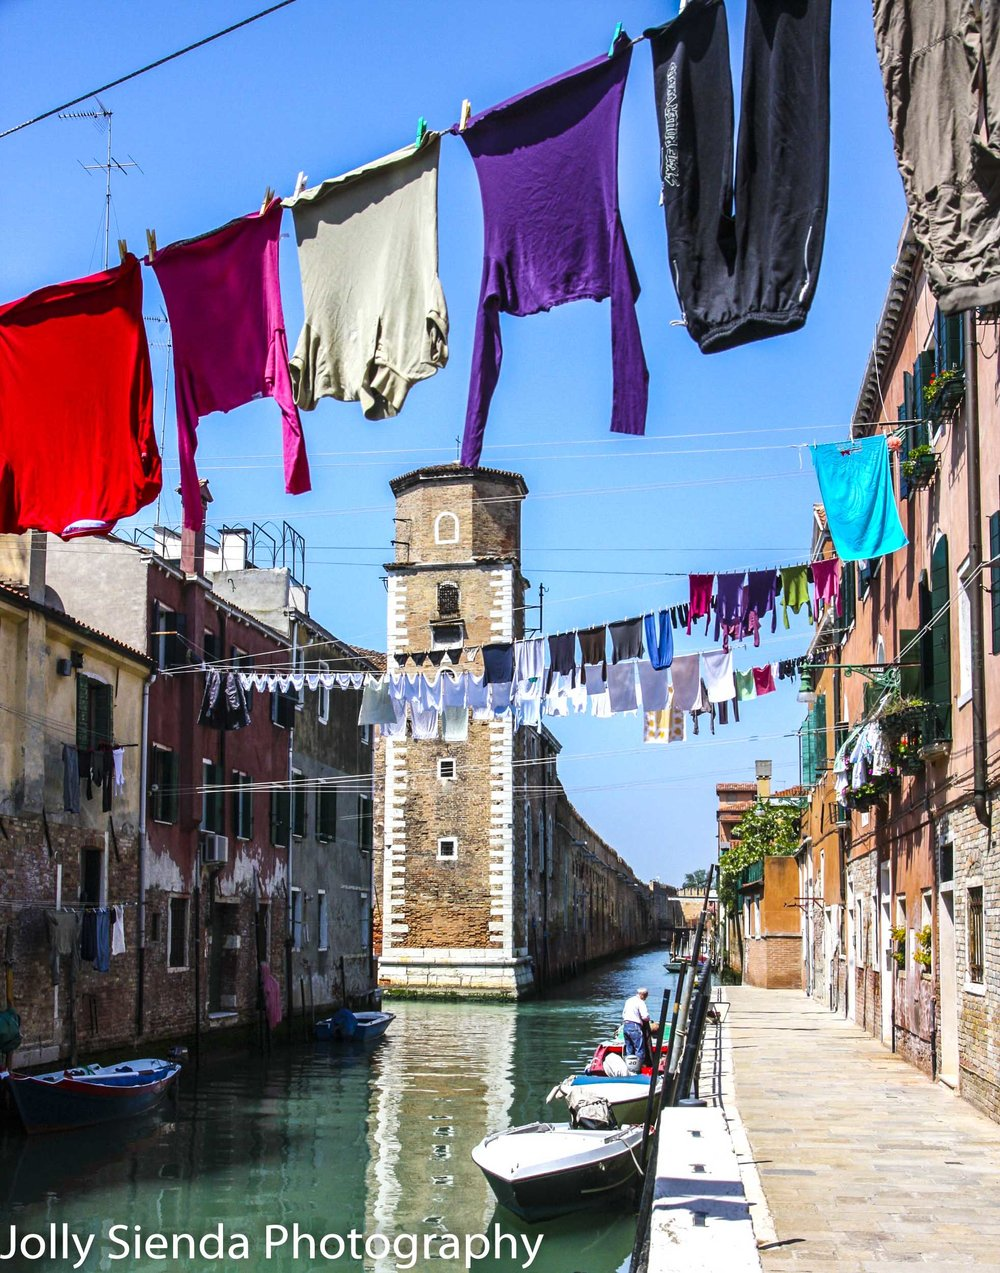 Quite Venetian canal with hanging laundry, boats, and a man in a